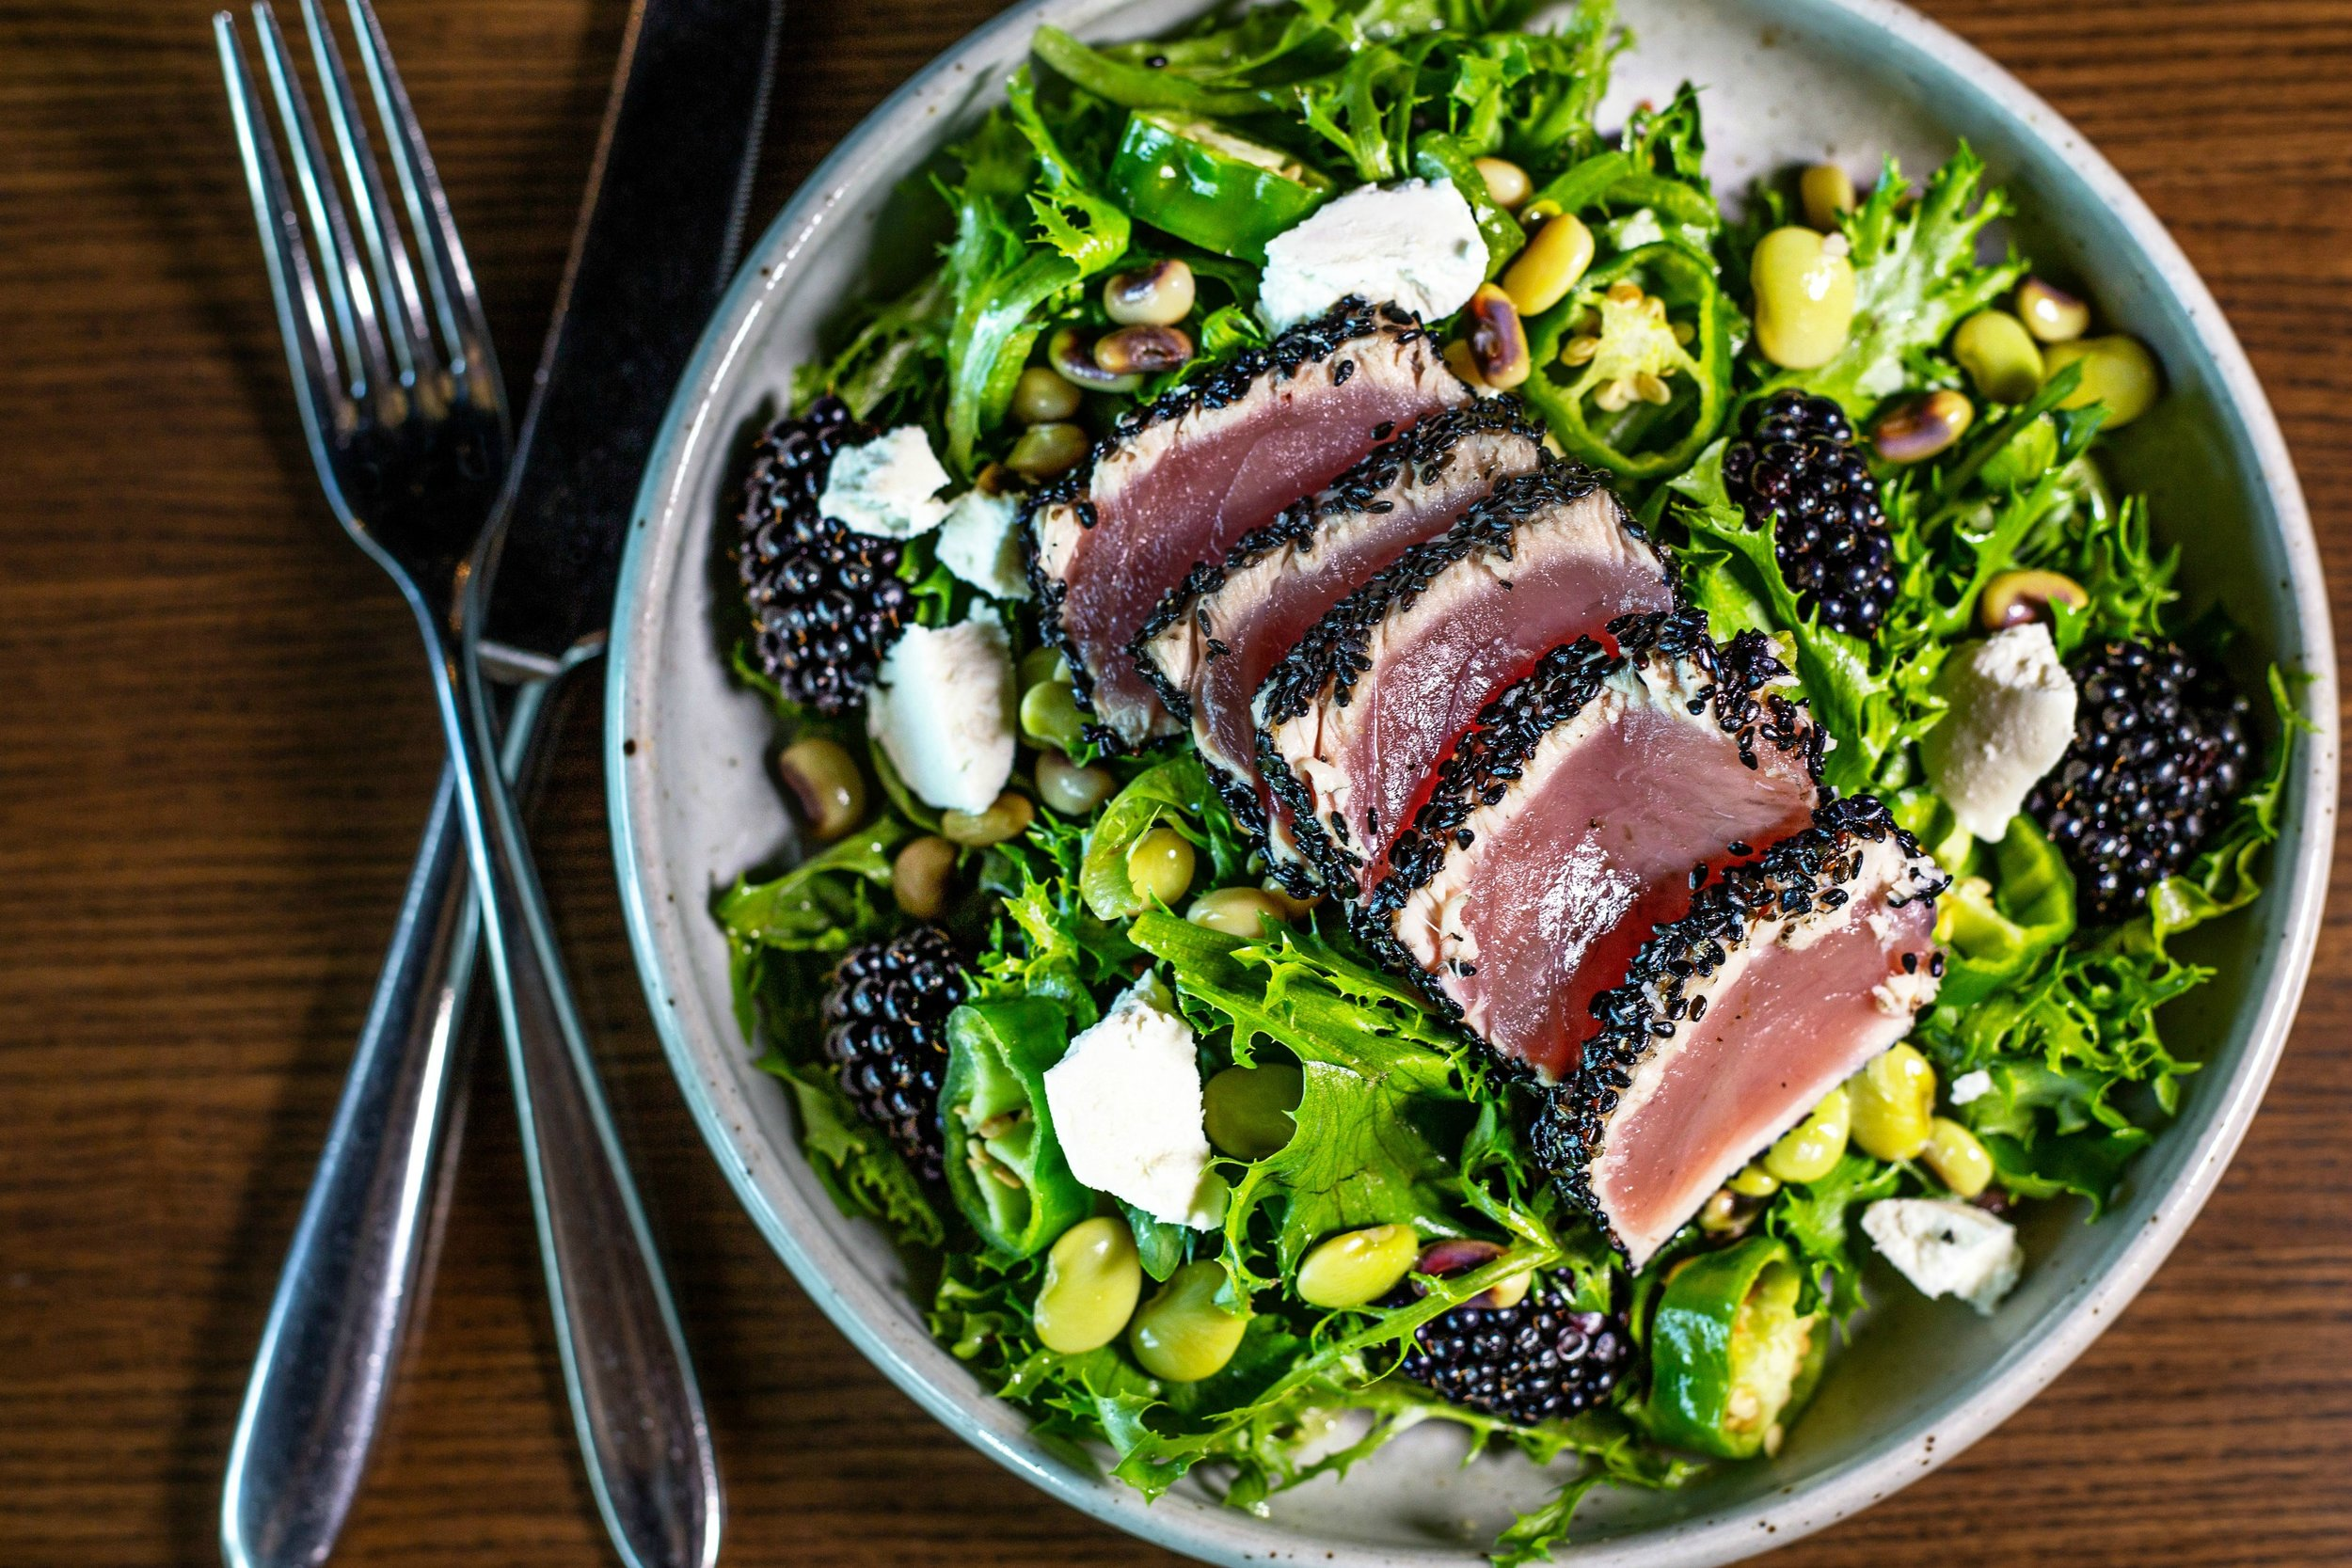 Tuna_Greens_Blackberries_Salad_Chef_Jason-3.jpg